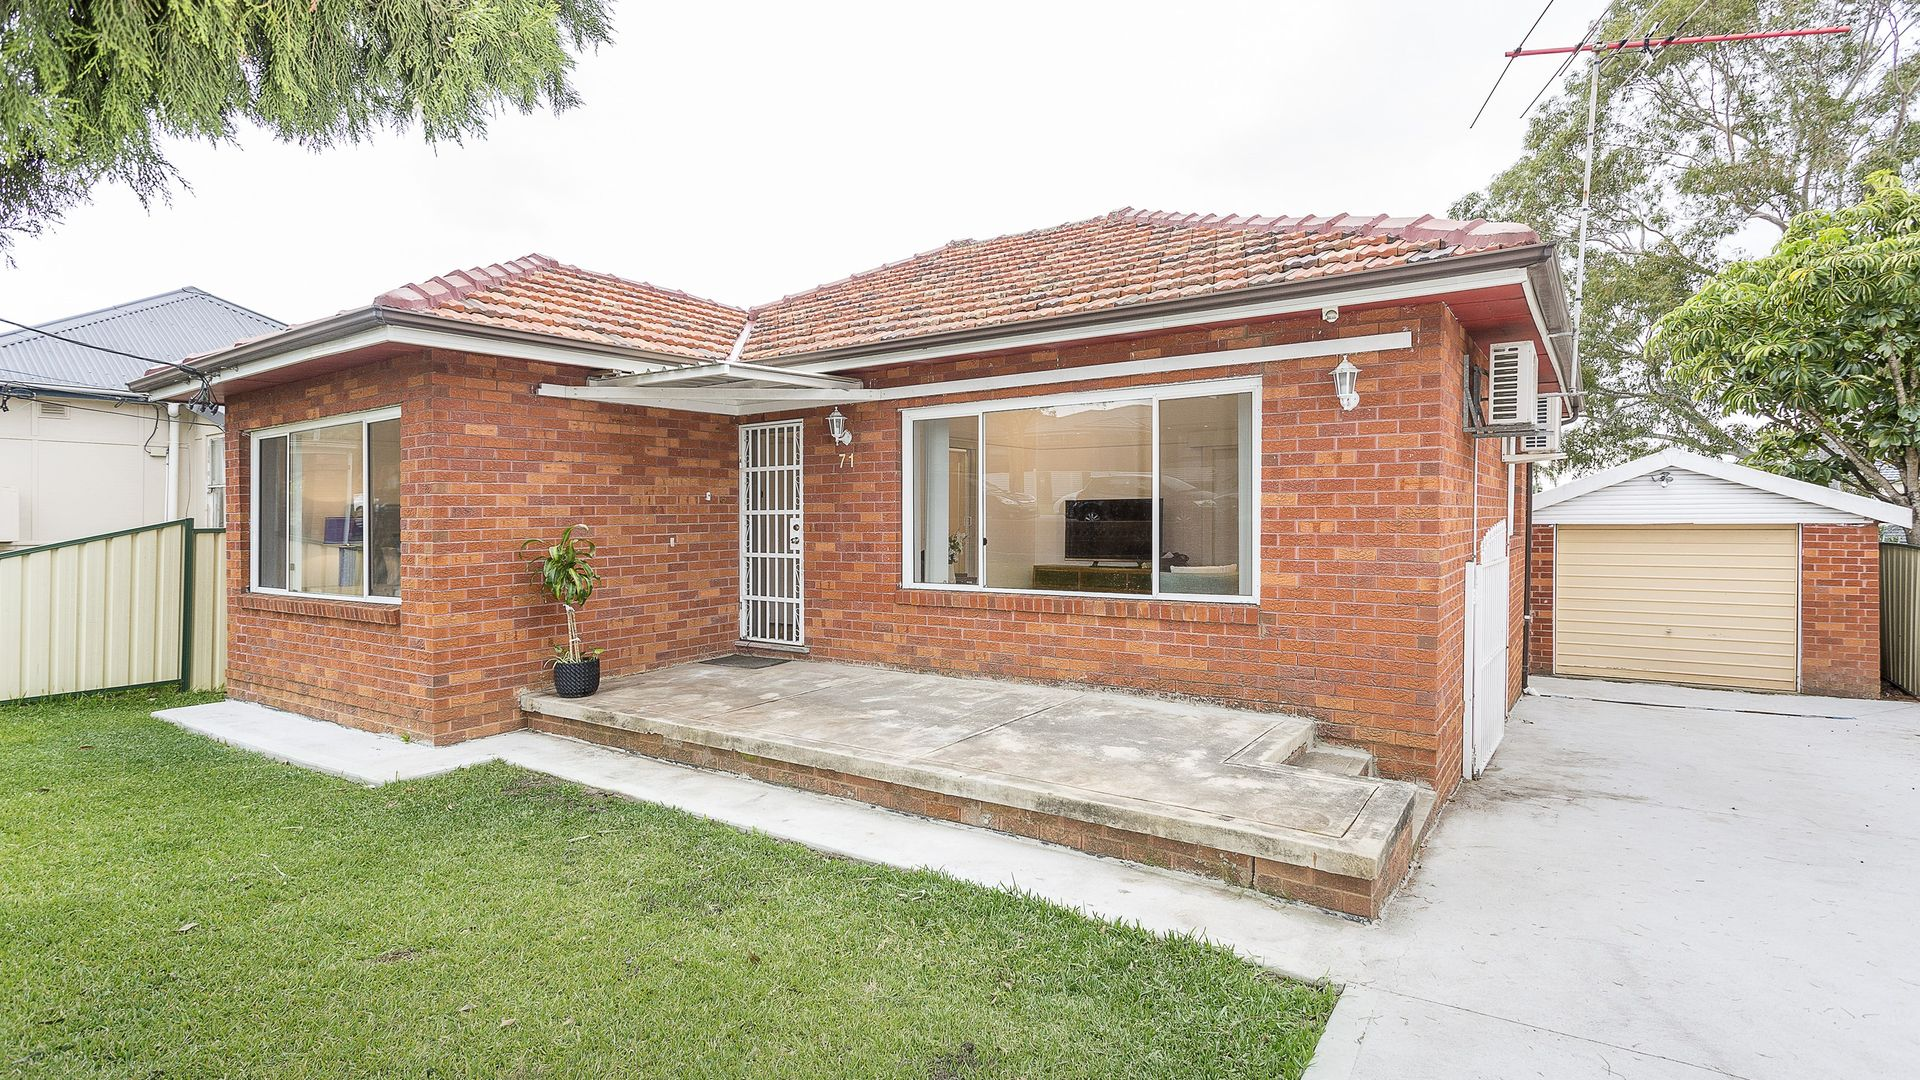 71 MARY STREET, Merrylands NSW 2160, Image 2